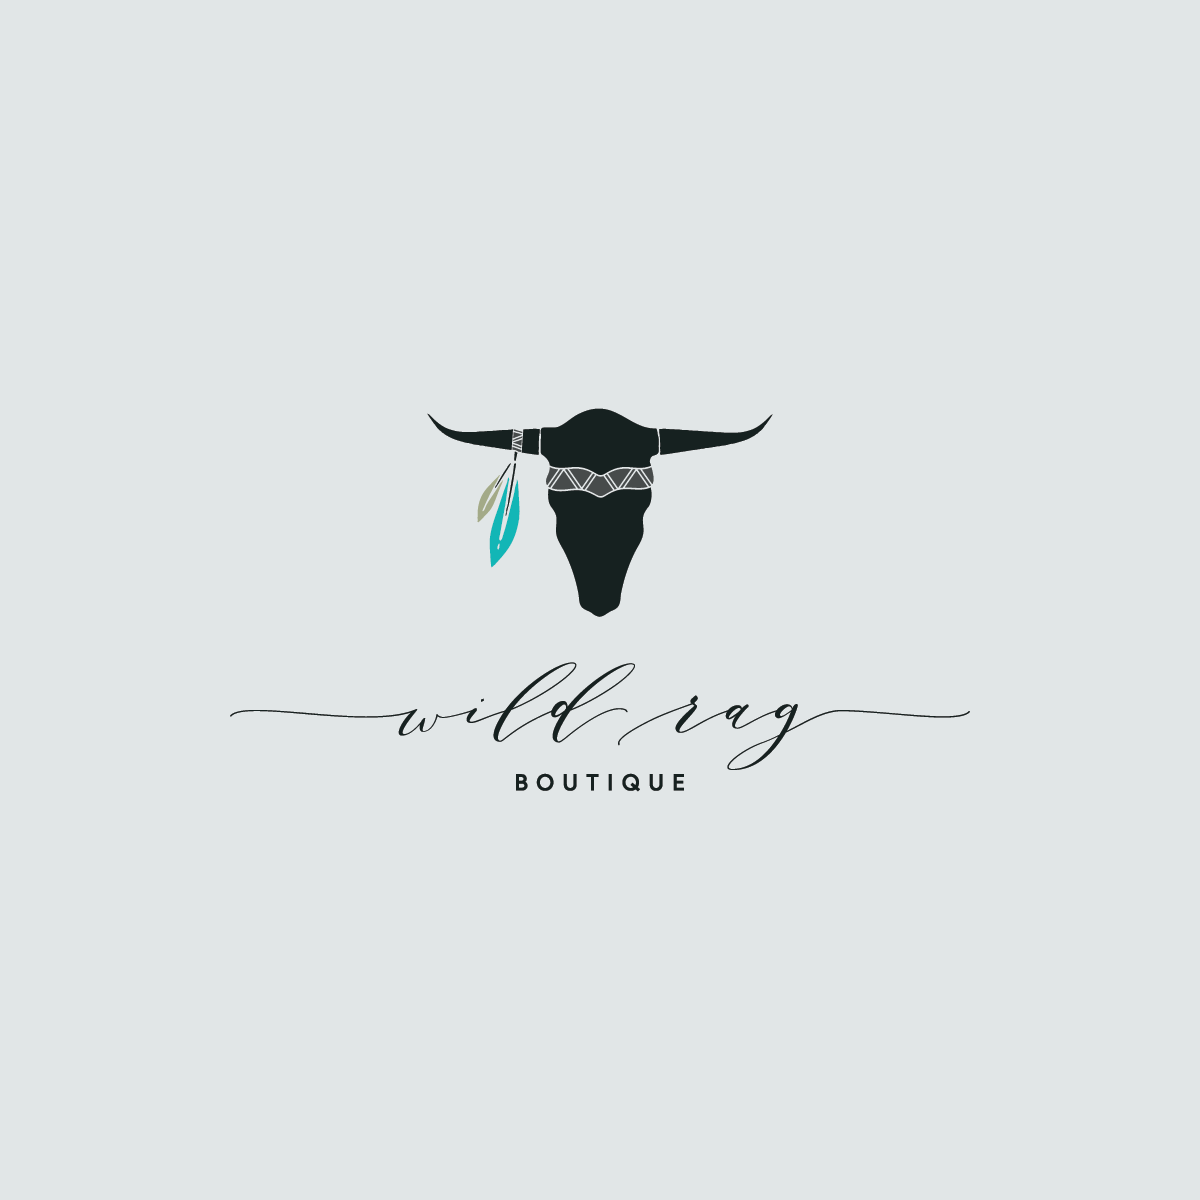 Main logo design for Wild Rag Boutique by Rachel Cottrell of The Bloom Design Company | #graphicdesign #logodesign #branddesign #profilepicture #westernfashion #bohowesternfashion #onlineboutique #fashionboutique #boutiquebranding